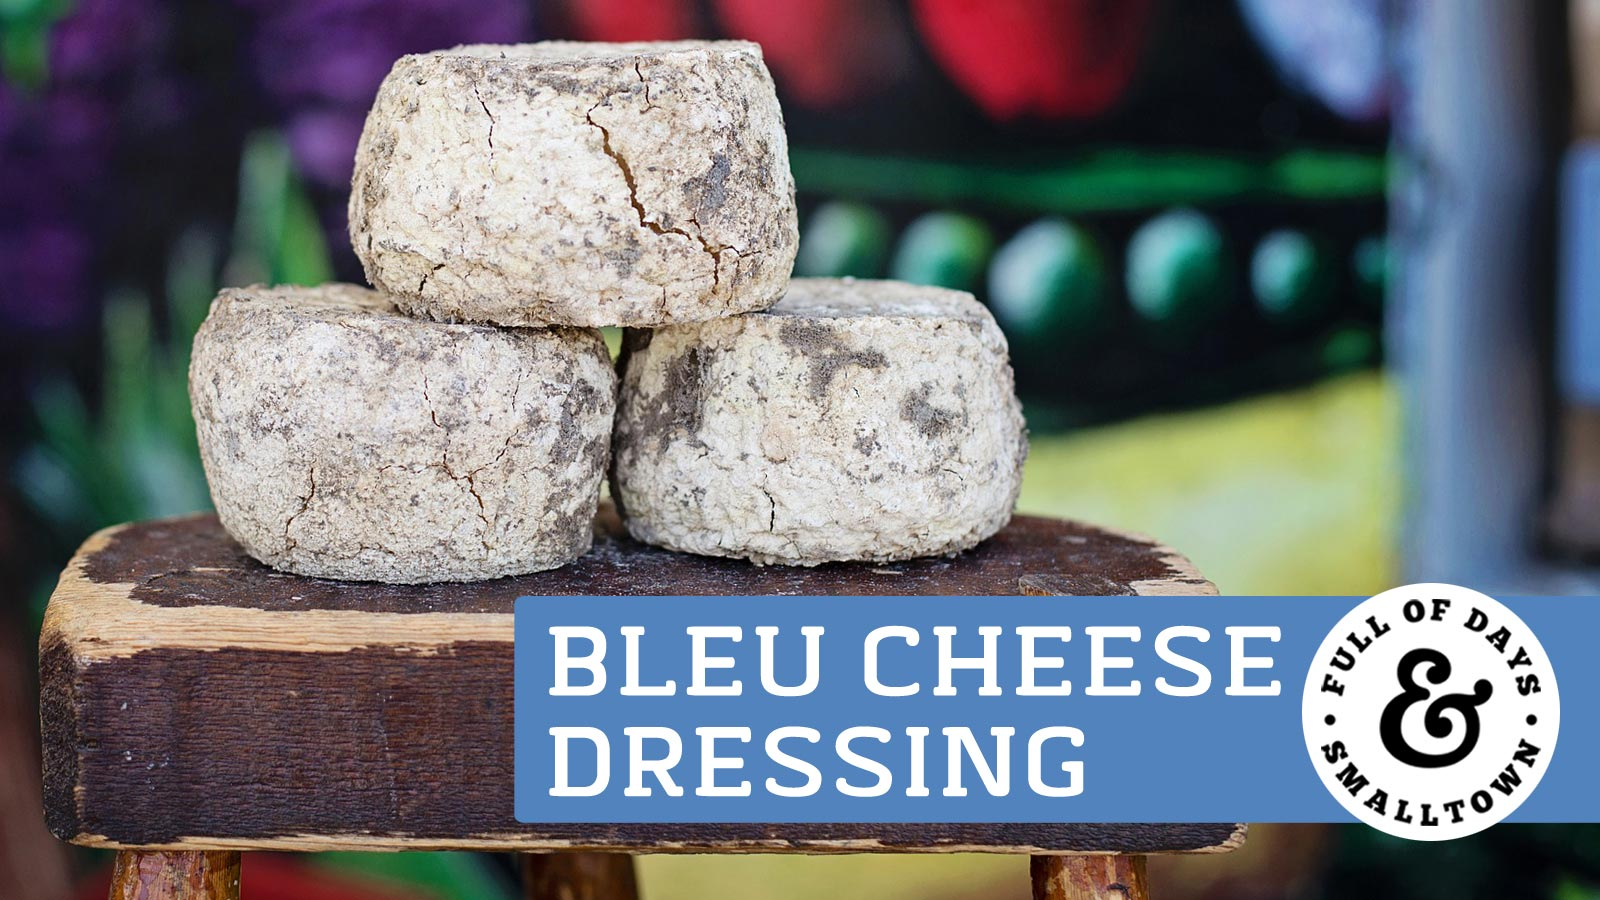 DIY Bleu Cheese Dressing Recipe